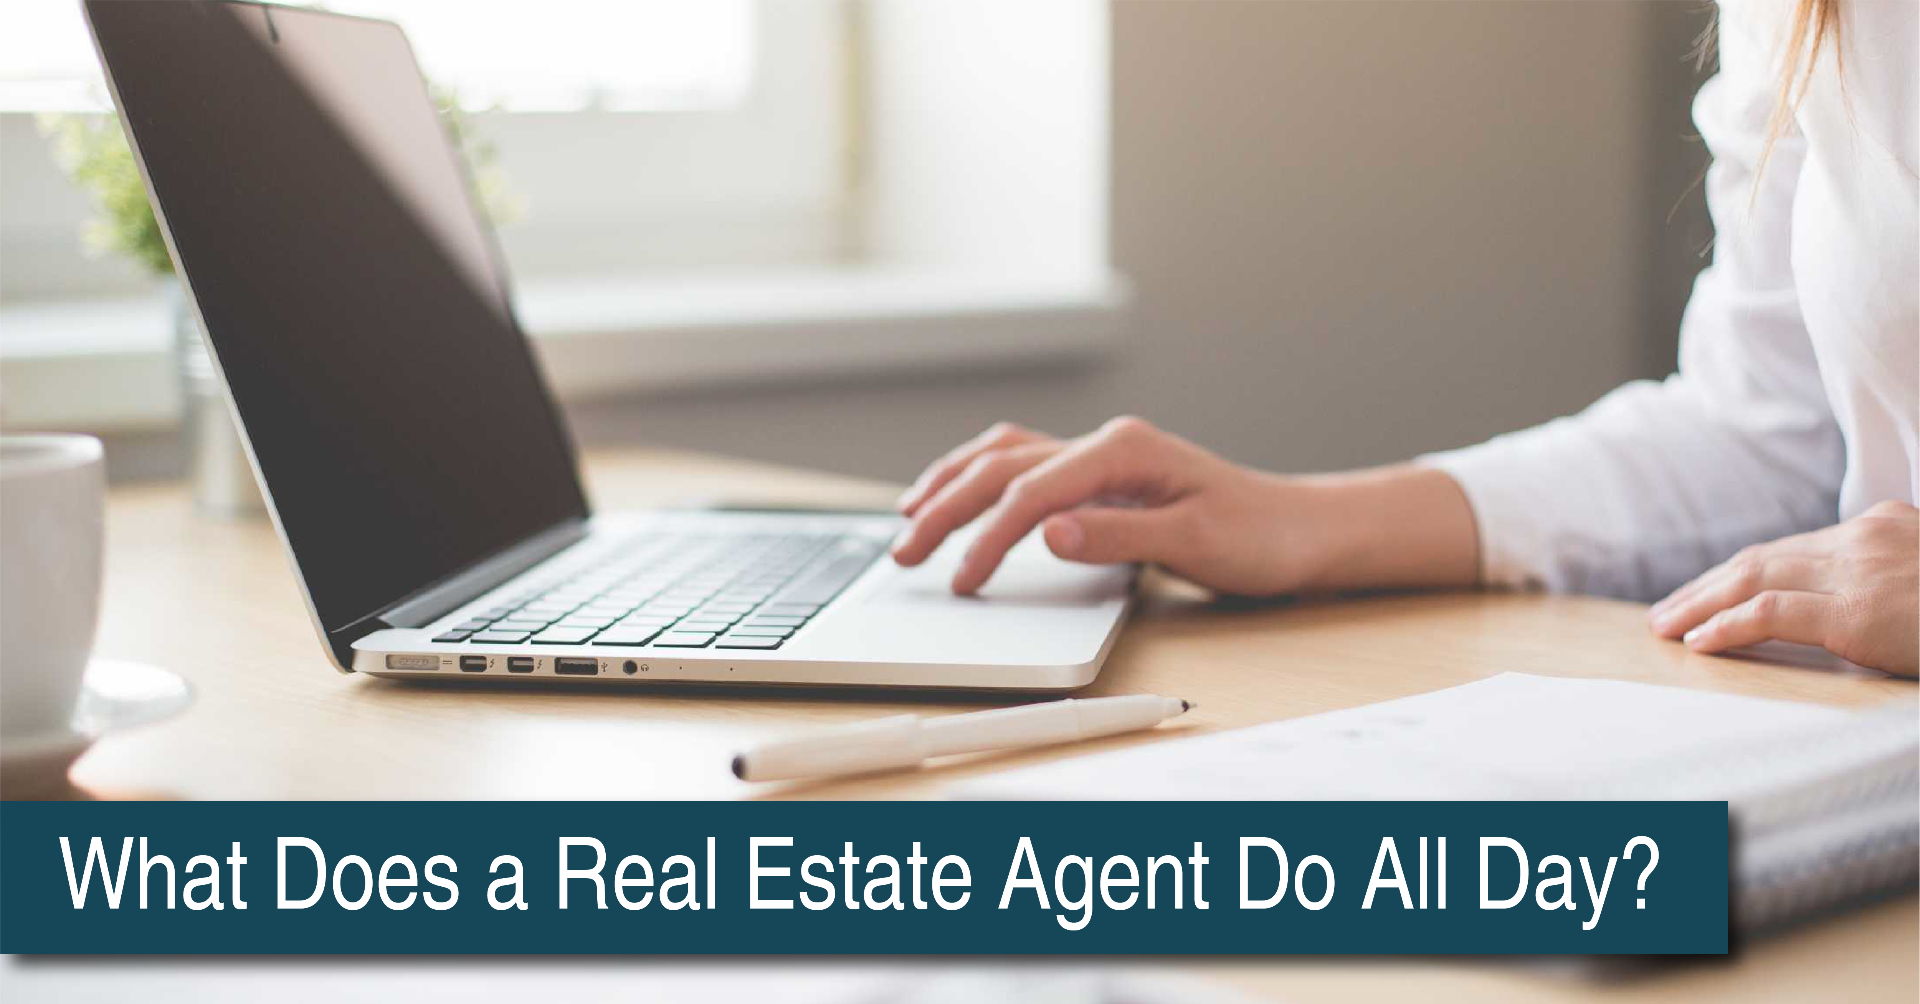 What Does a Real Estate Agent Do All Day?